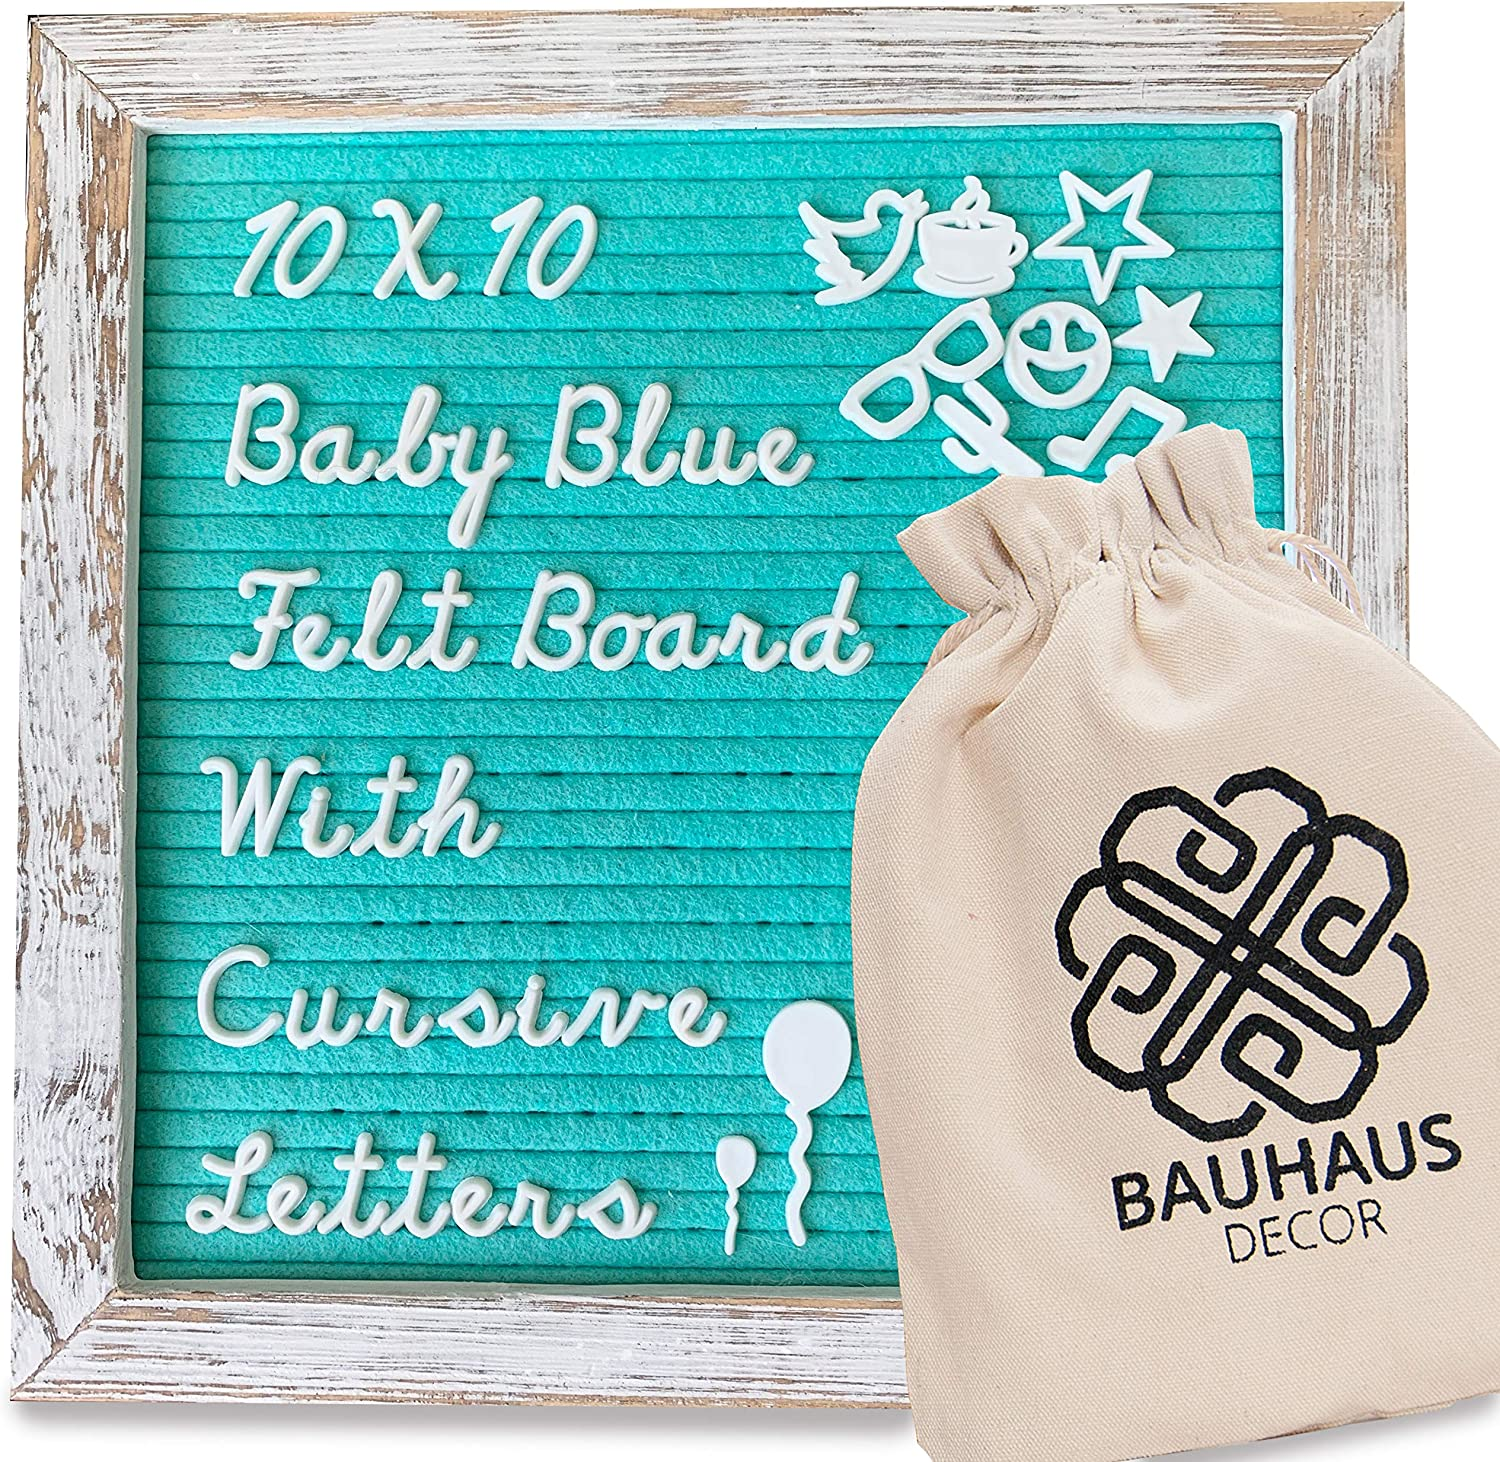 Bauhaus Decor Felt Letter Board with White Rustic Farmhouse Frame and Stand 10x10 inch, Baby Blue / Mint Green Changeable Message Board Includes 395 CURSIVE Letters, Numbers, and Symbols, a Canvas Bag